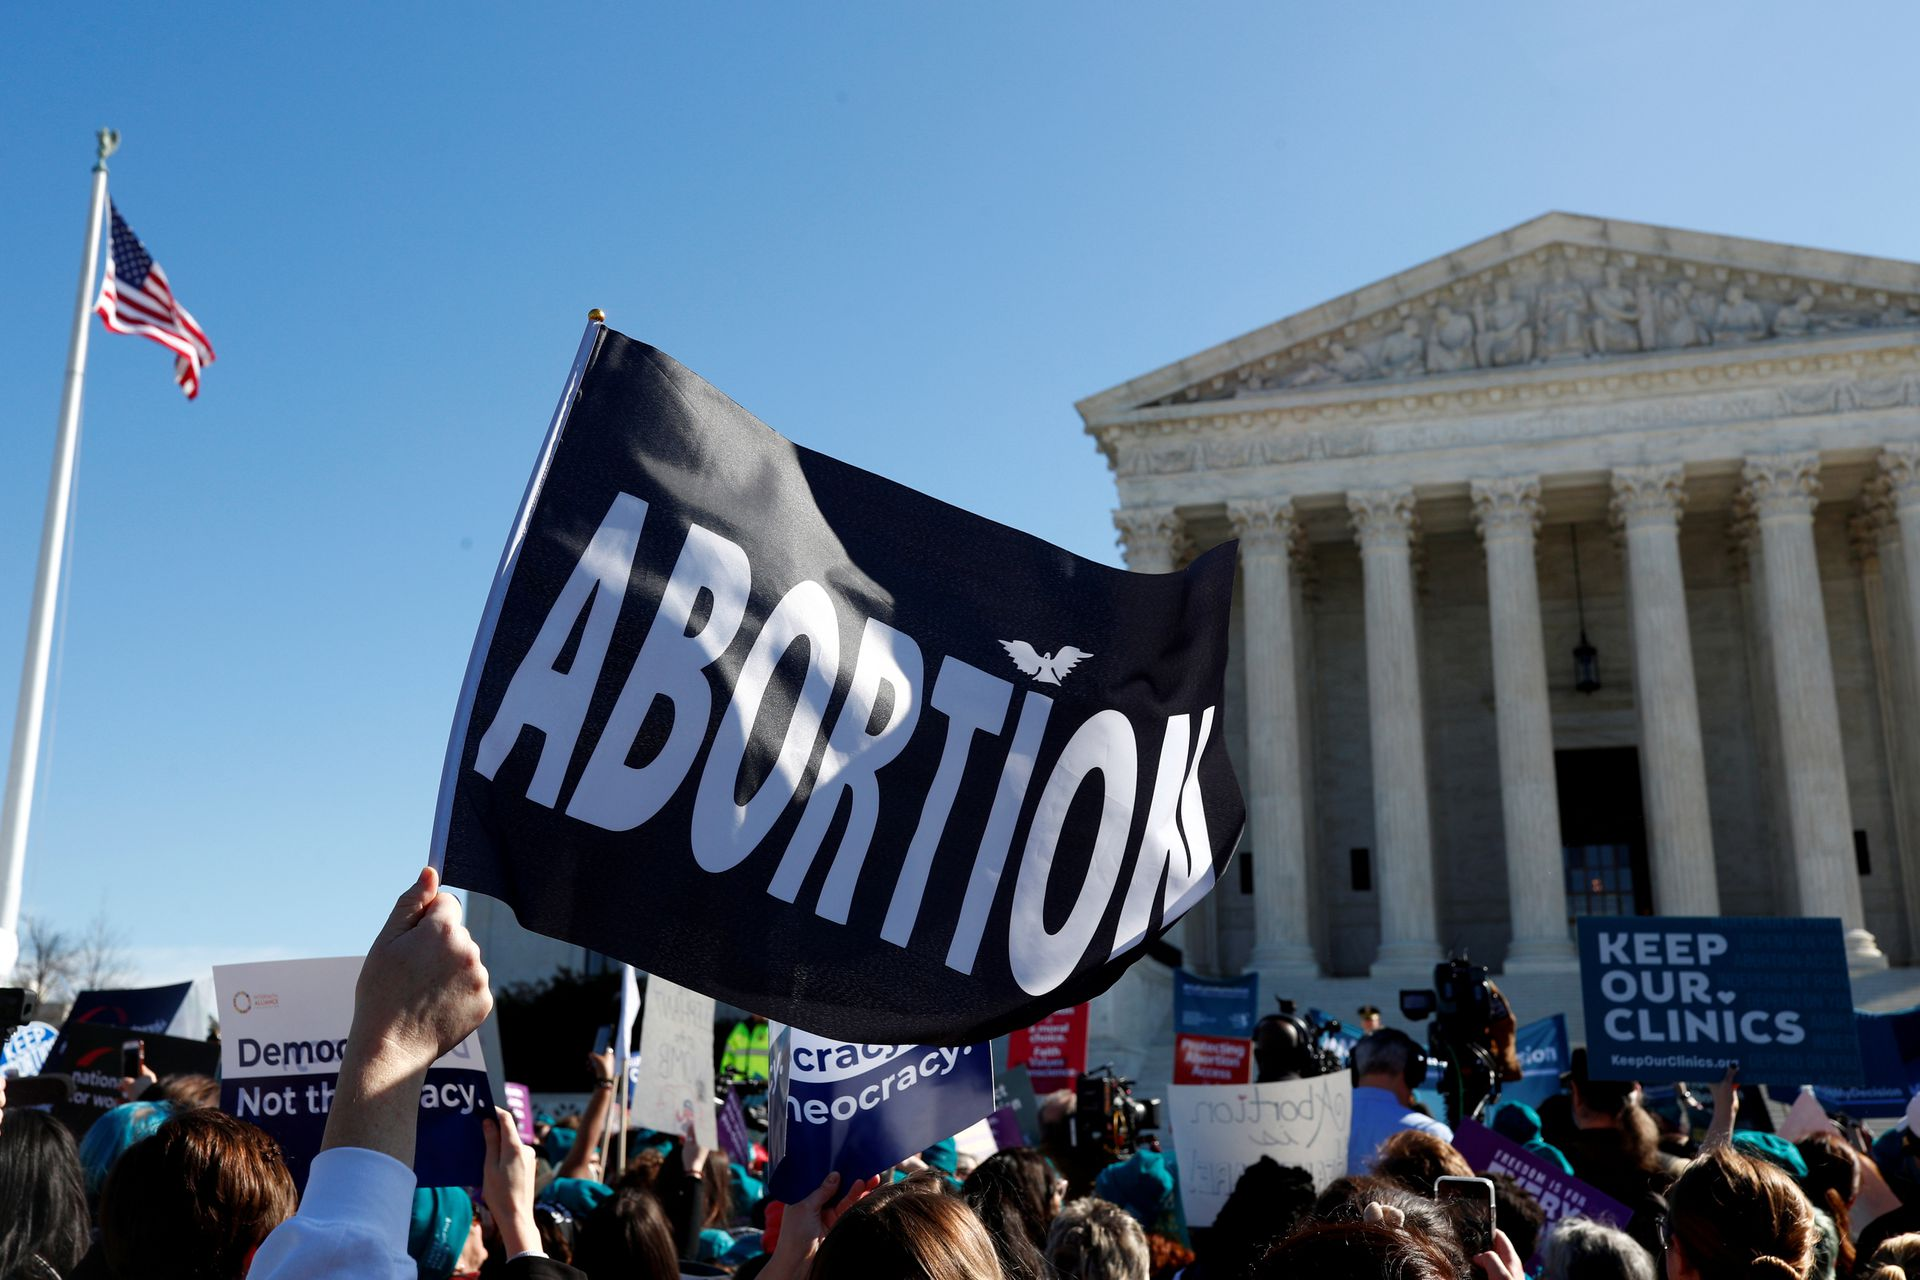 Texas Law Banning Most Abortions After Six Weeks of Pregnancy Goes Into Effect